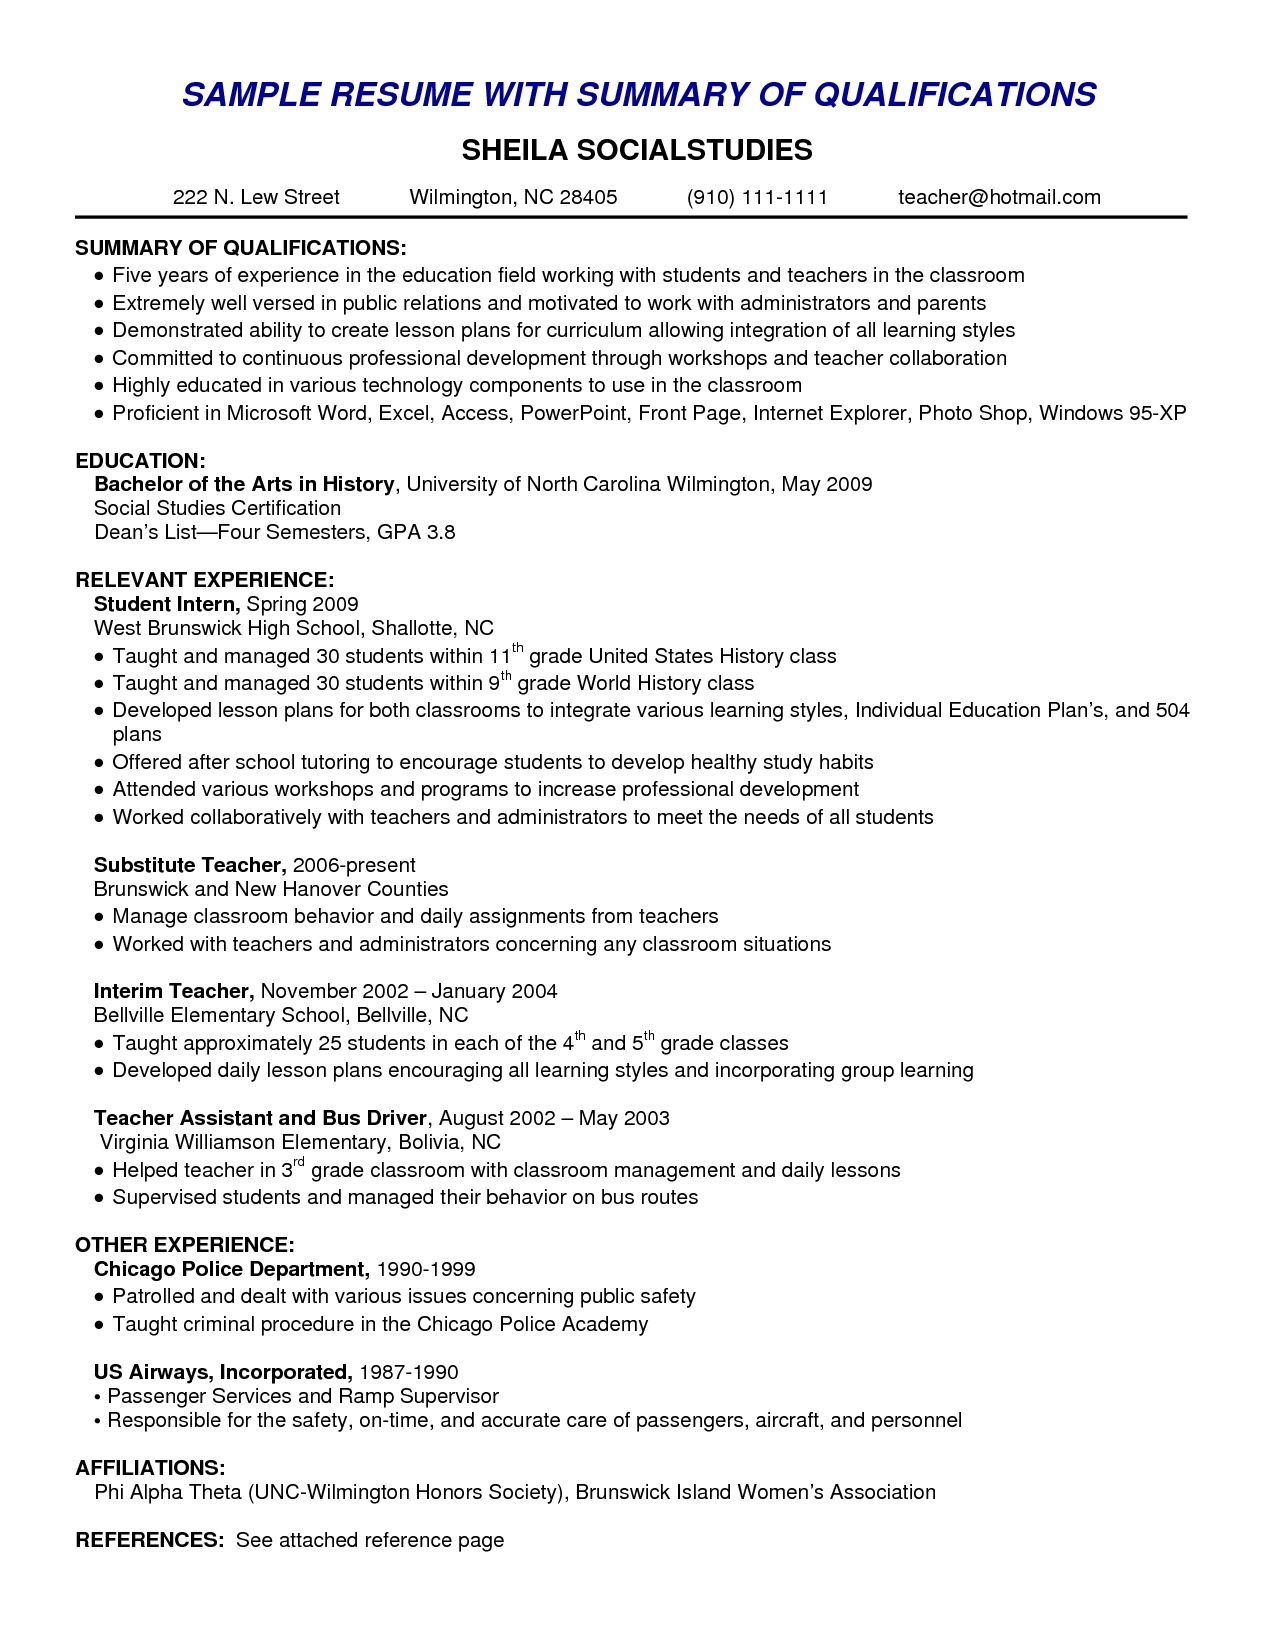 summary examples for resume students sending through email openstack experience military Resume Resume Summary Examples For Students